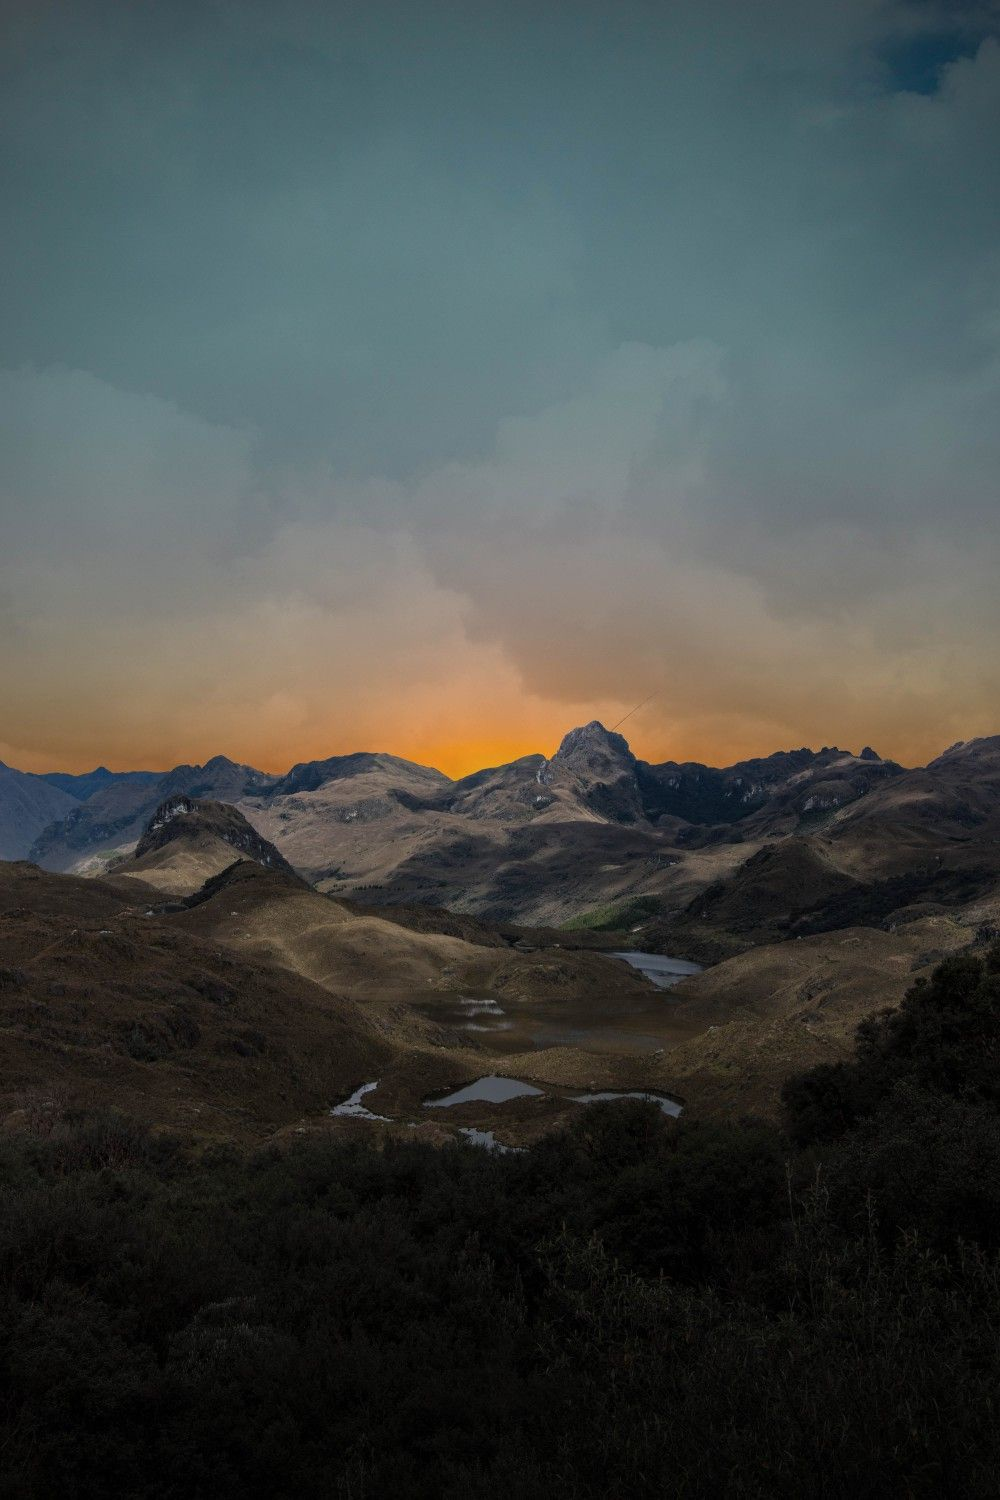 Pin By Iyan Sofyan On Mountains Mountain Landscape Photography Panoramic Photography Mountains